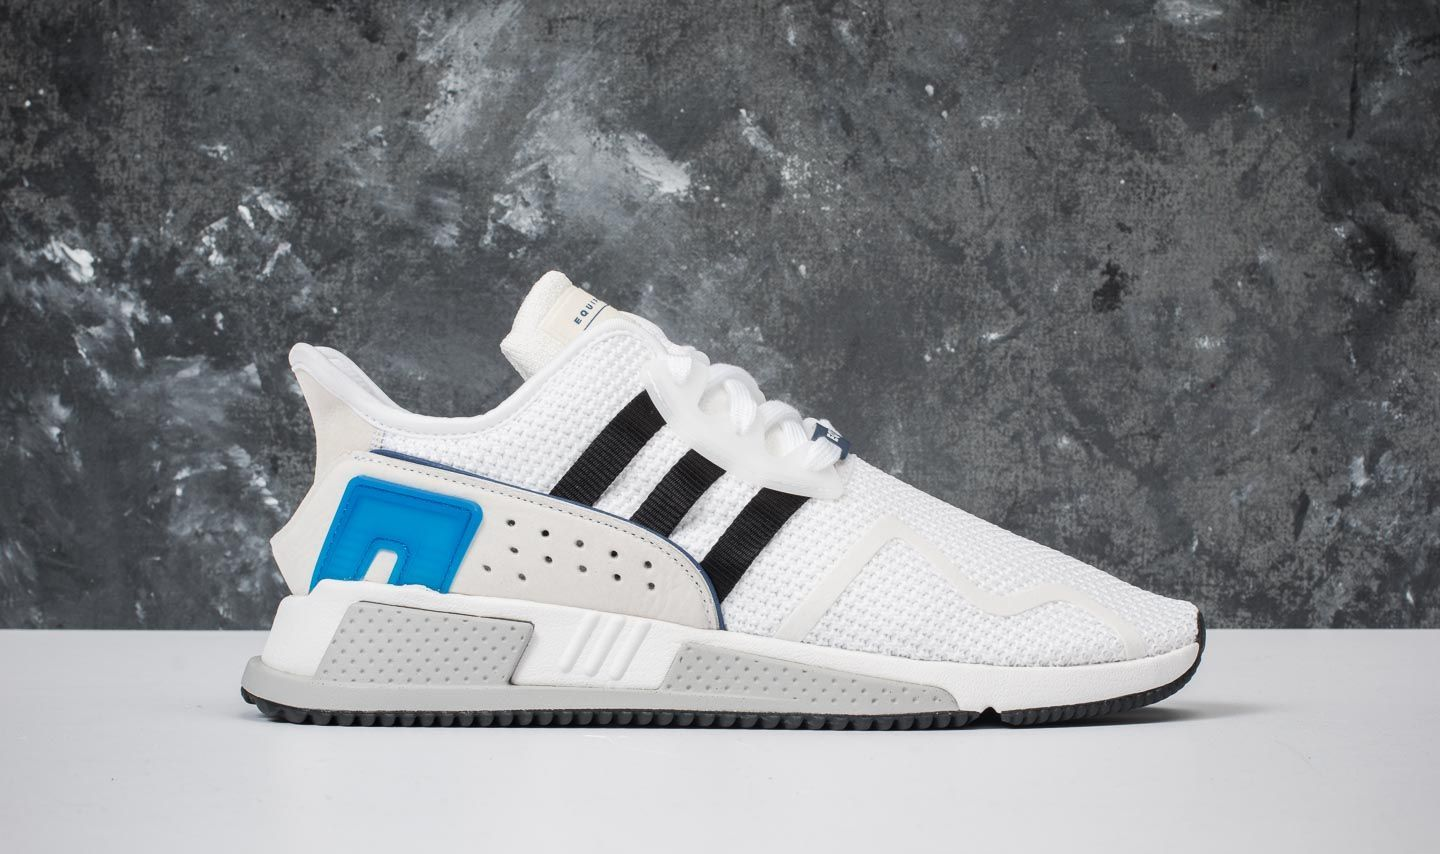 info for 23522 a0e28 adidas EQT Cushion ADV Ftw White Core Black Collegiate Royal at a great  price